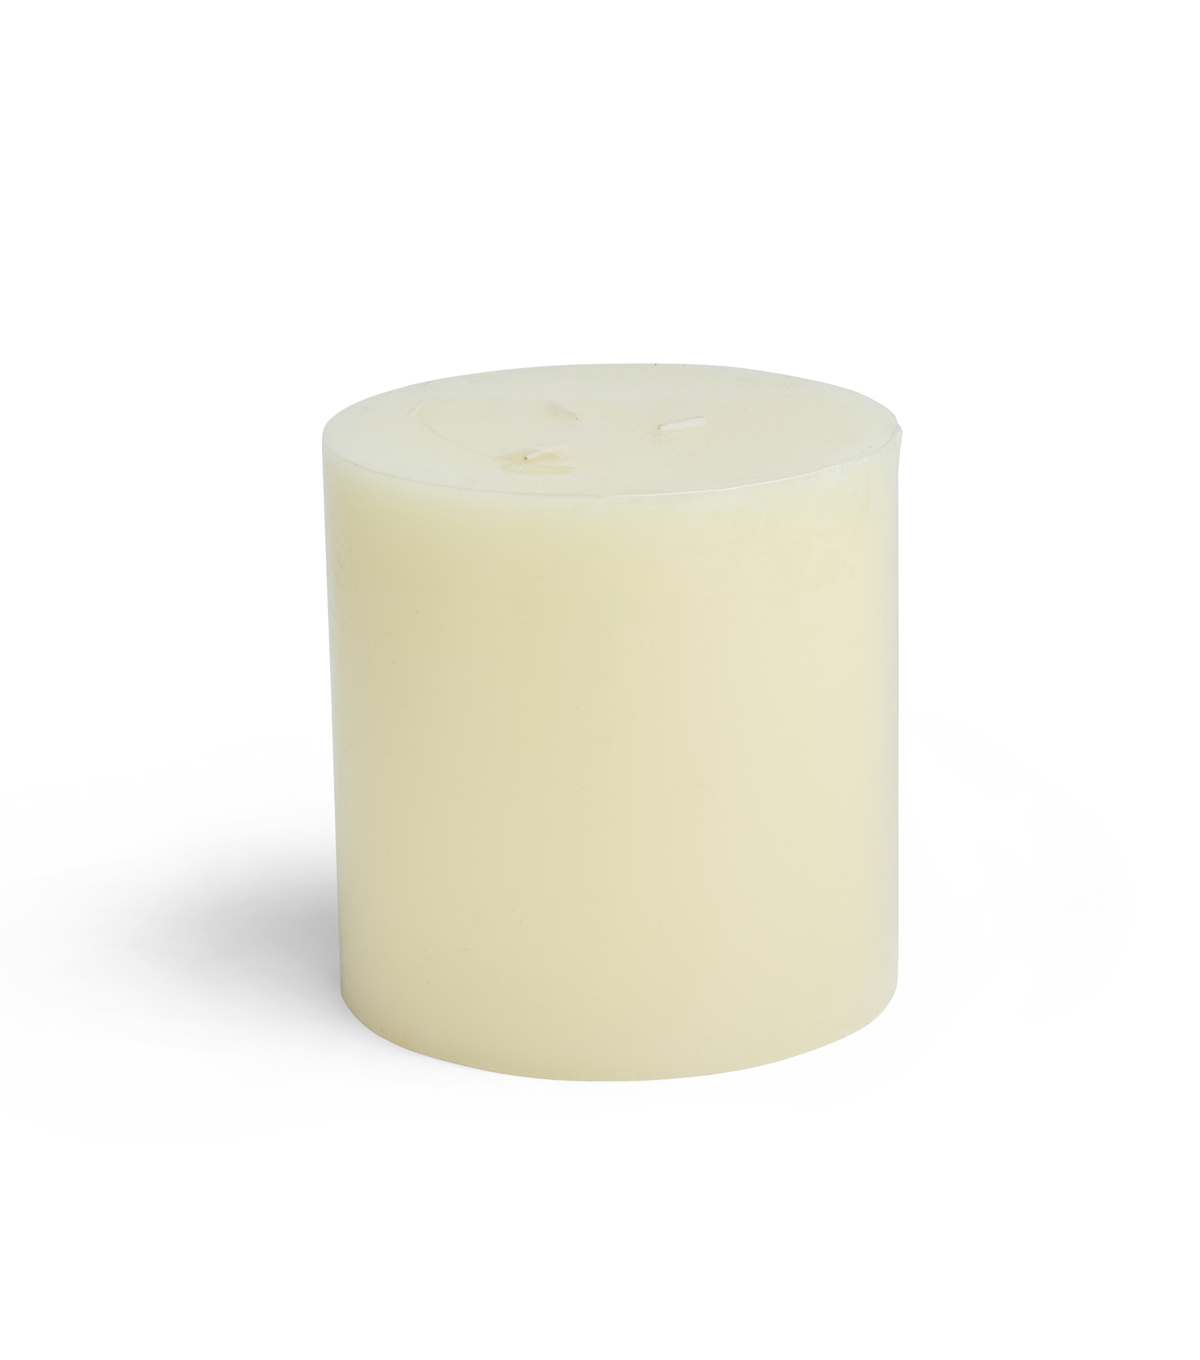 Hudson 43 Candle & Light 5\u0027\u0027x5\u0027\u0027 3-Wick Pillar Candle-Ivory